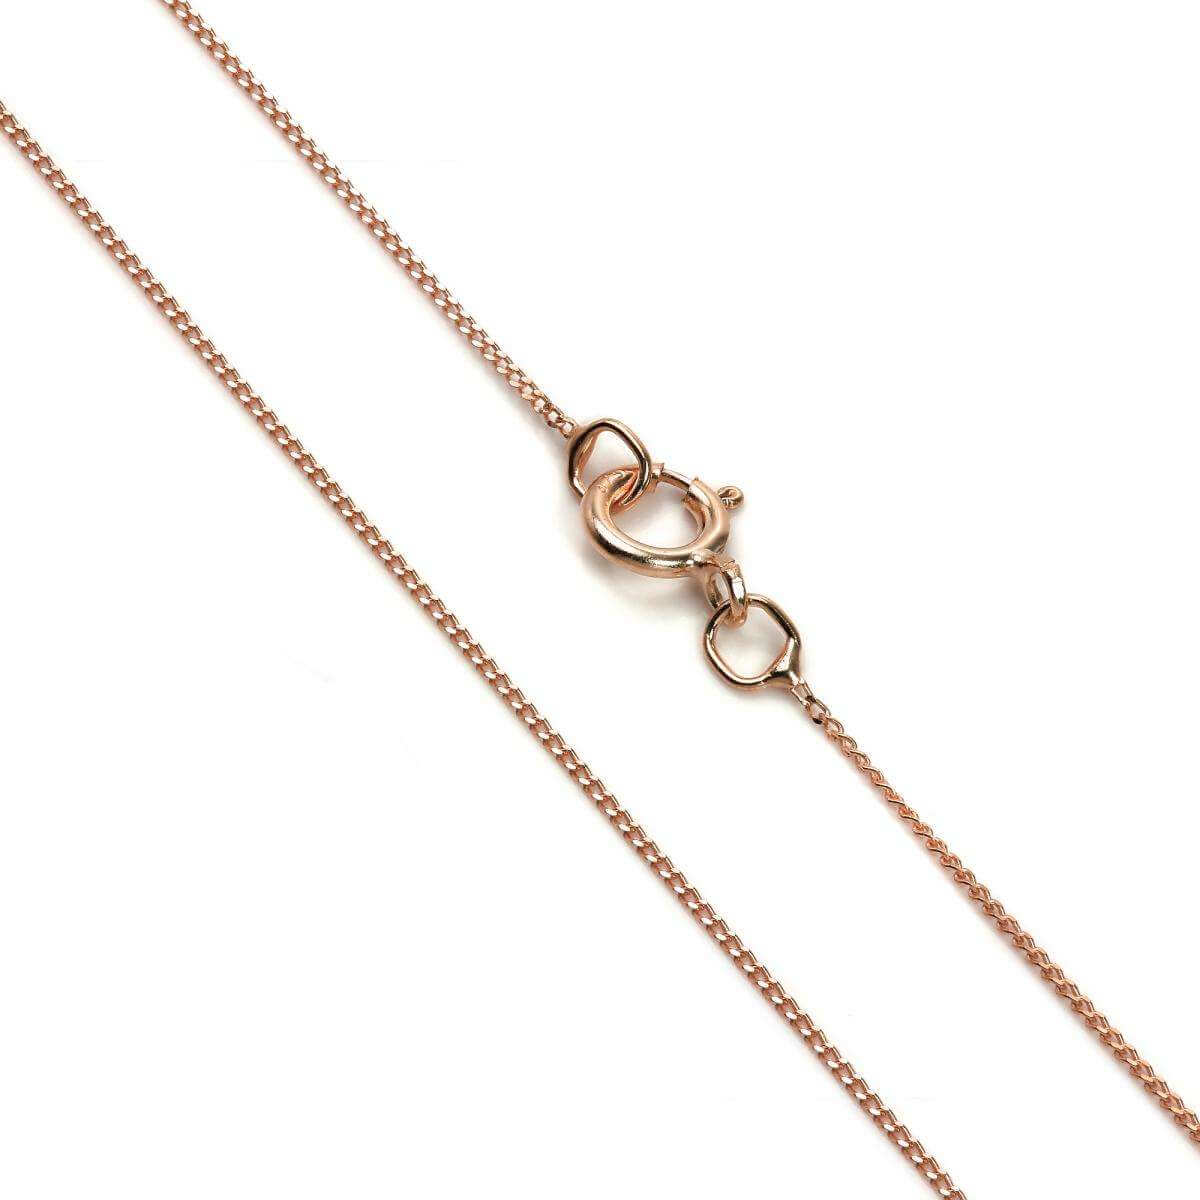 Fine 9ct Rose Gold Diamond Cut Curb Chain 16 - 18 Inches